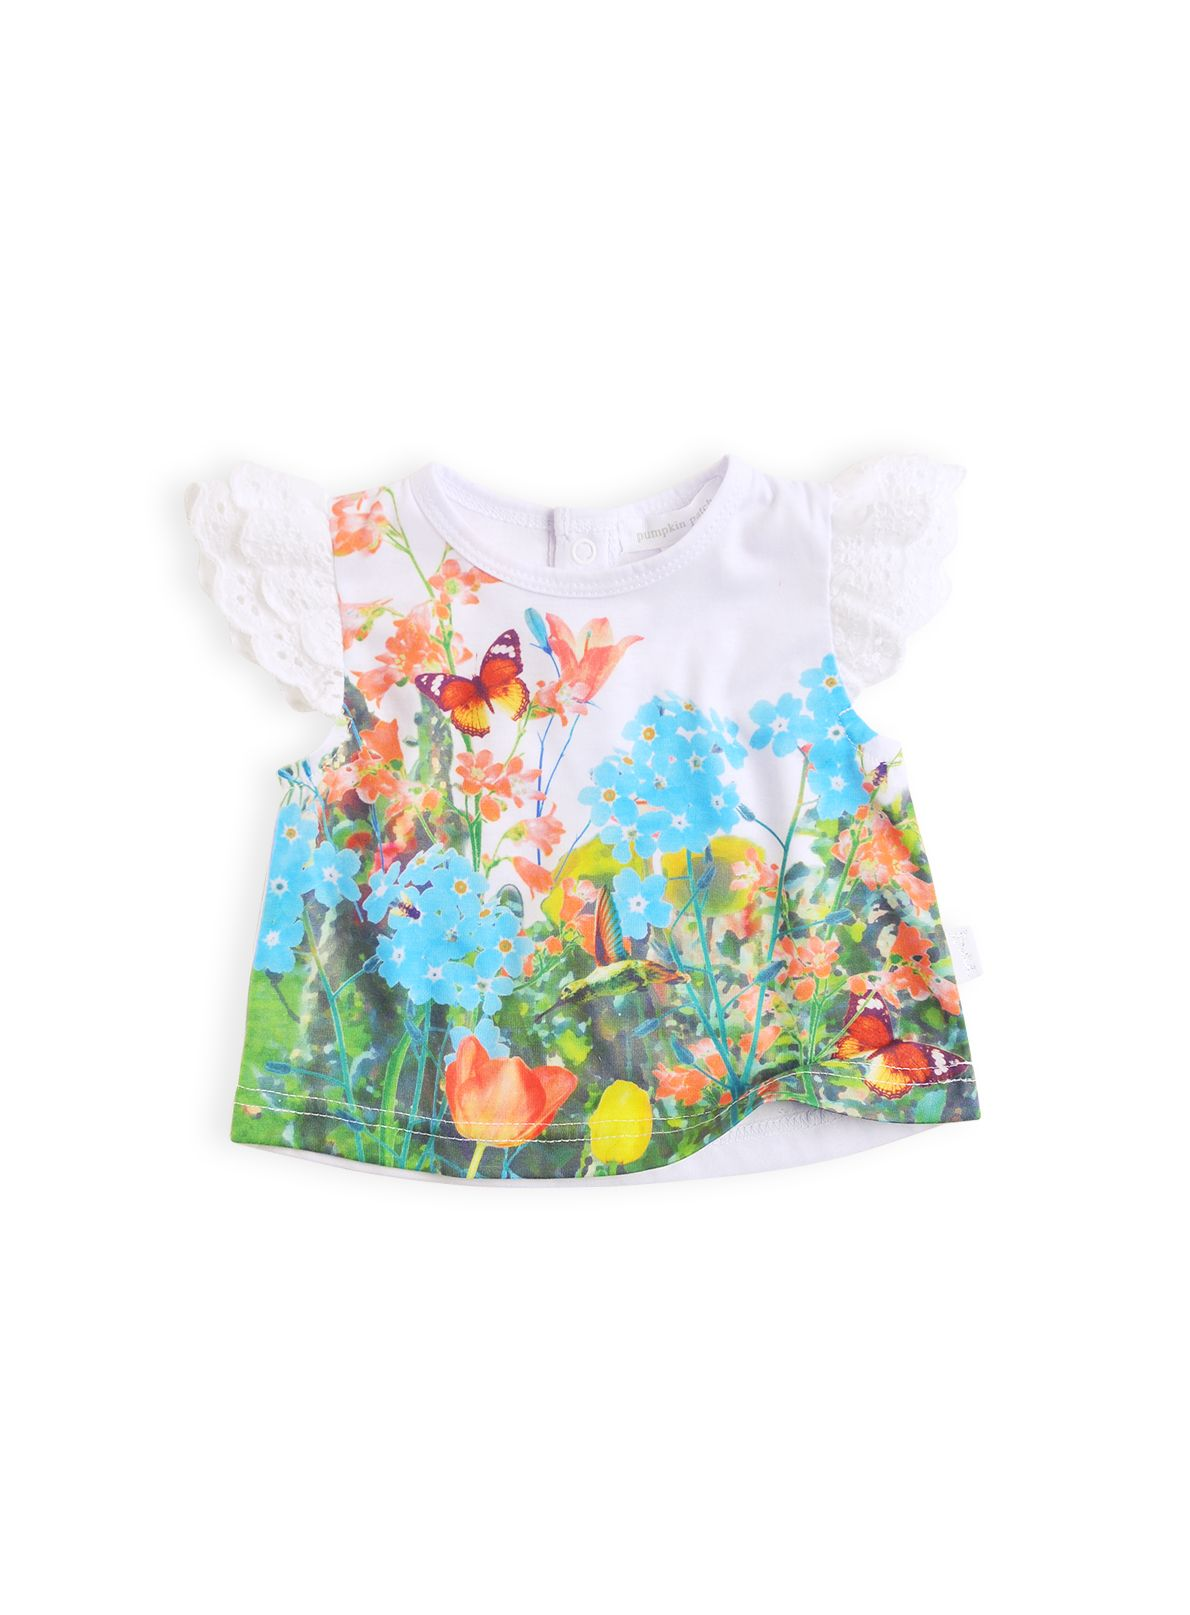 Girls photo print top